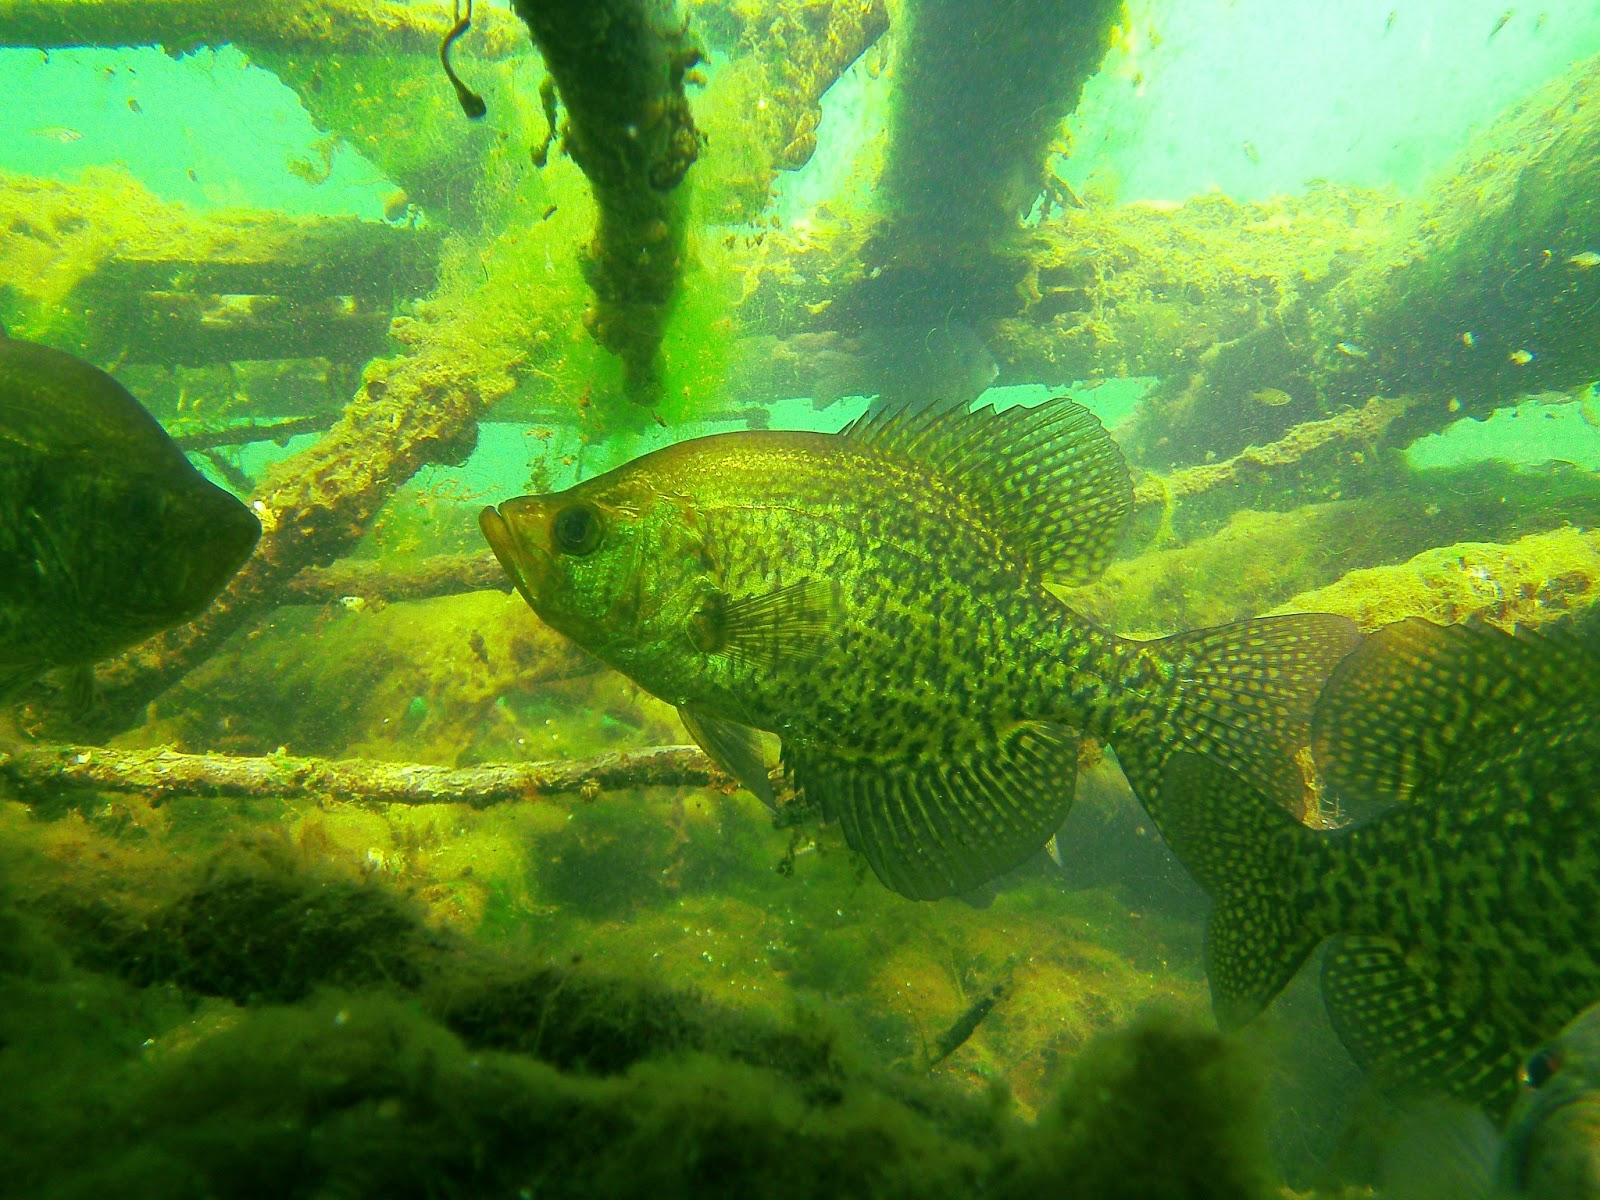 Live Wallpapers For Nook Hd Download Crappie Fishing Wallpaper Gallery